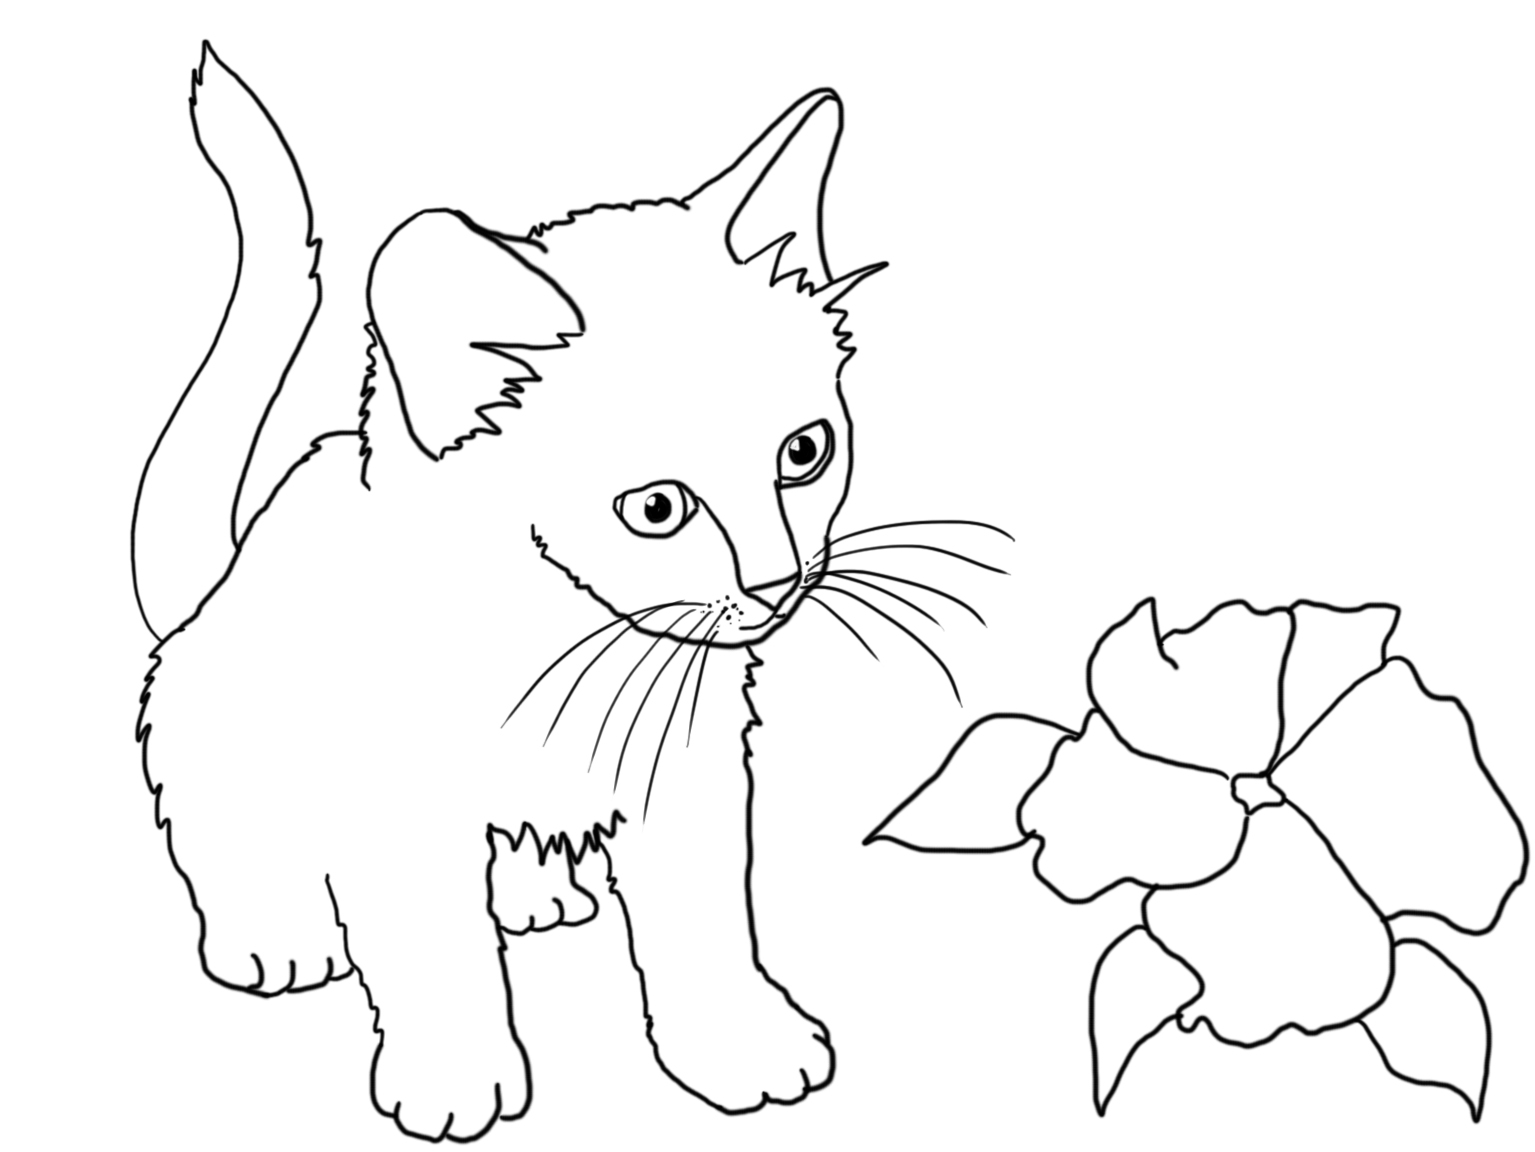 Cat Drawing Pages at GetDrawings.com   Free for personal use Cat ...